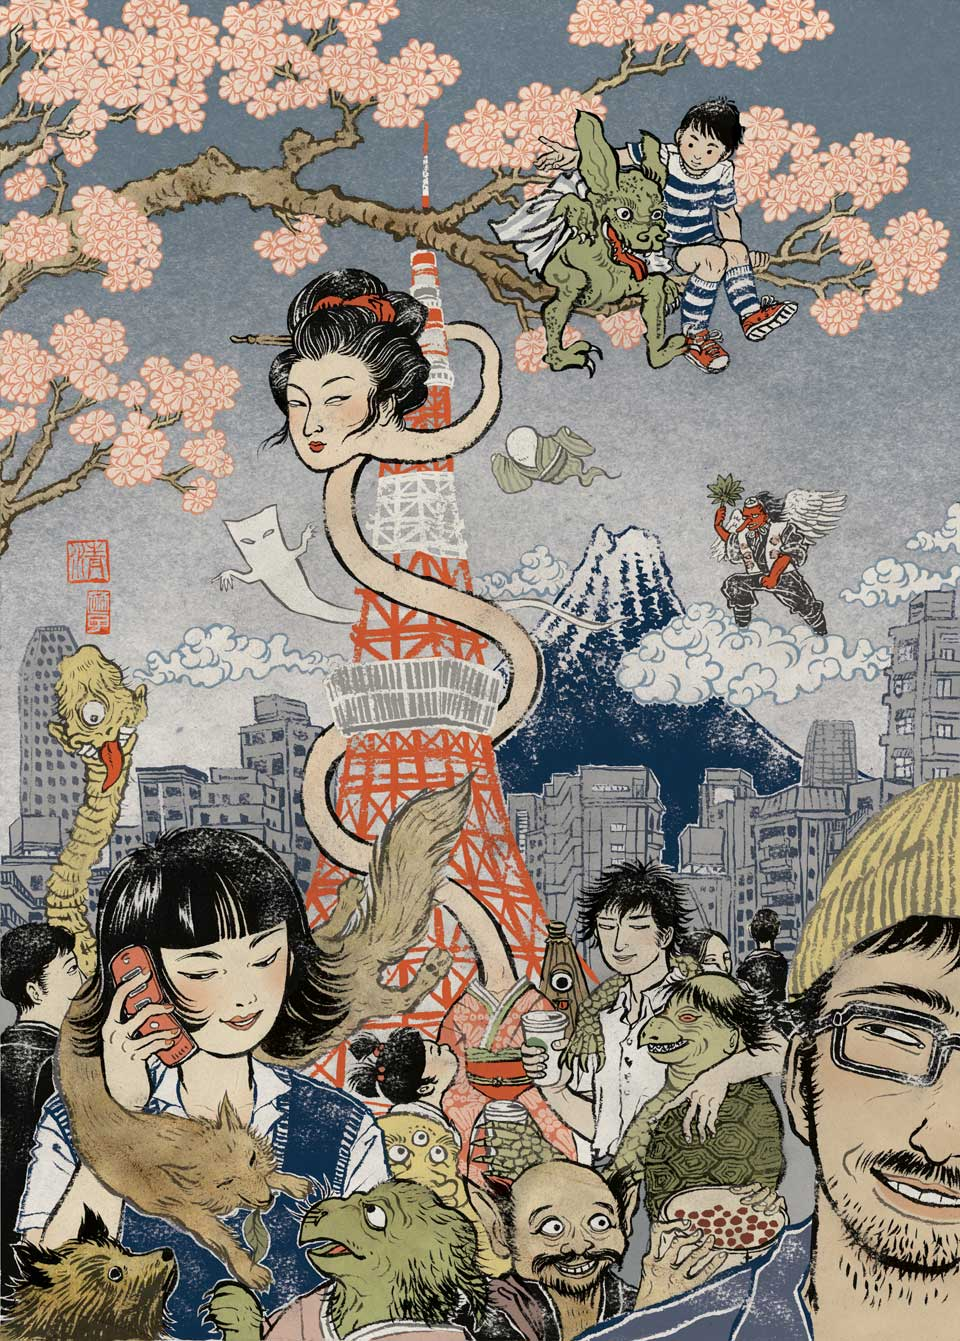 New Works by Yuko Shimizu: yuko_shimizu_two_15_20121027_1610932698.jpeg